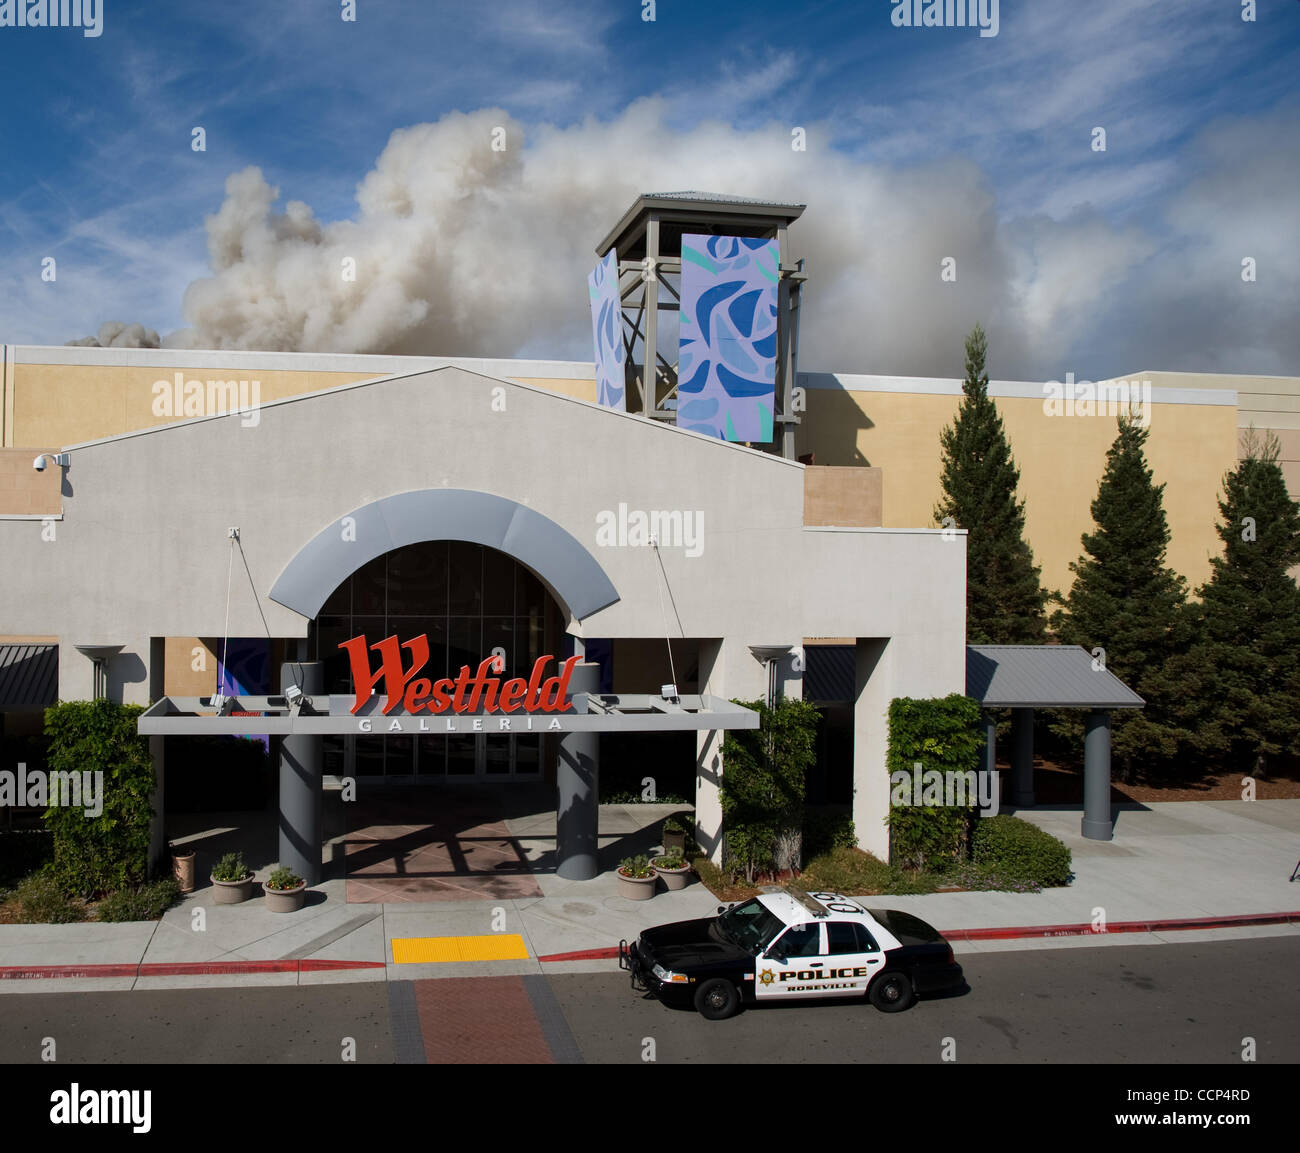 Roseville California Stock Photos & Roseville California